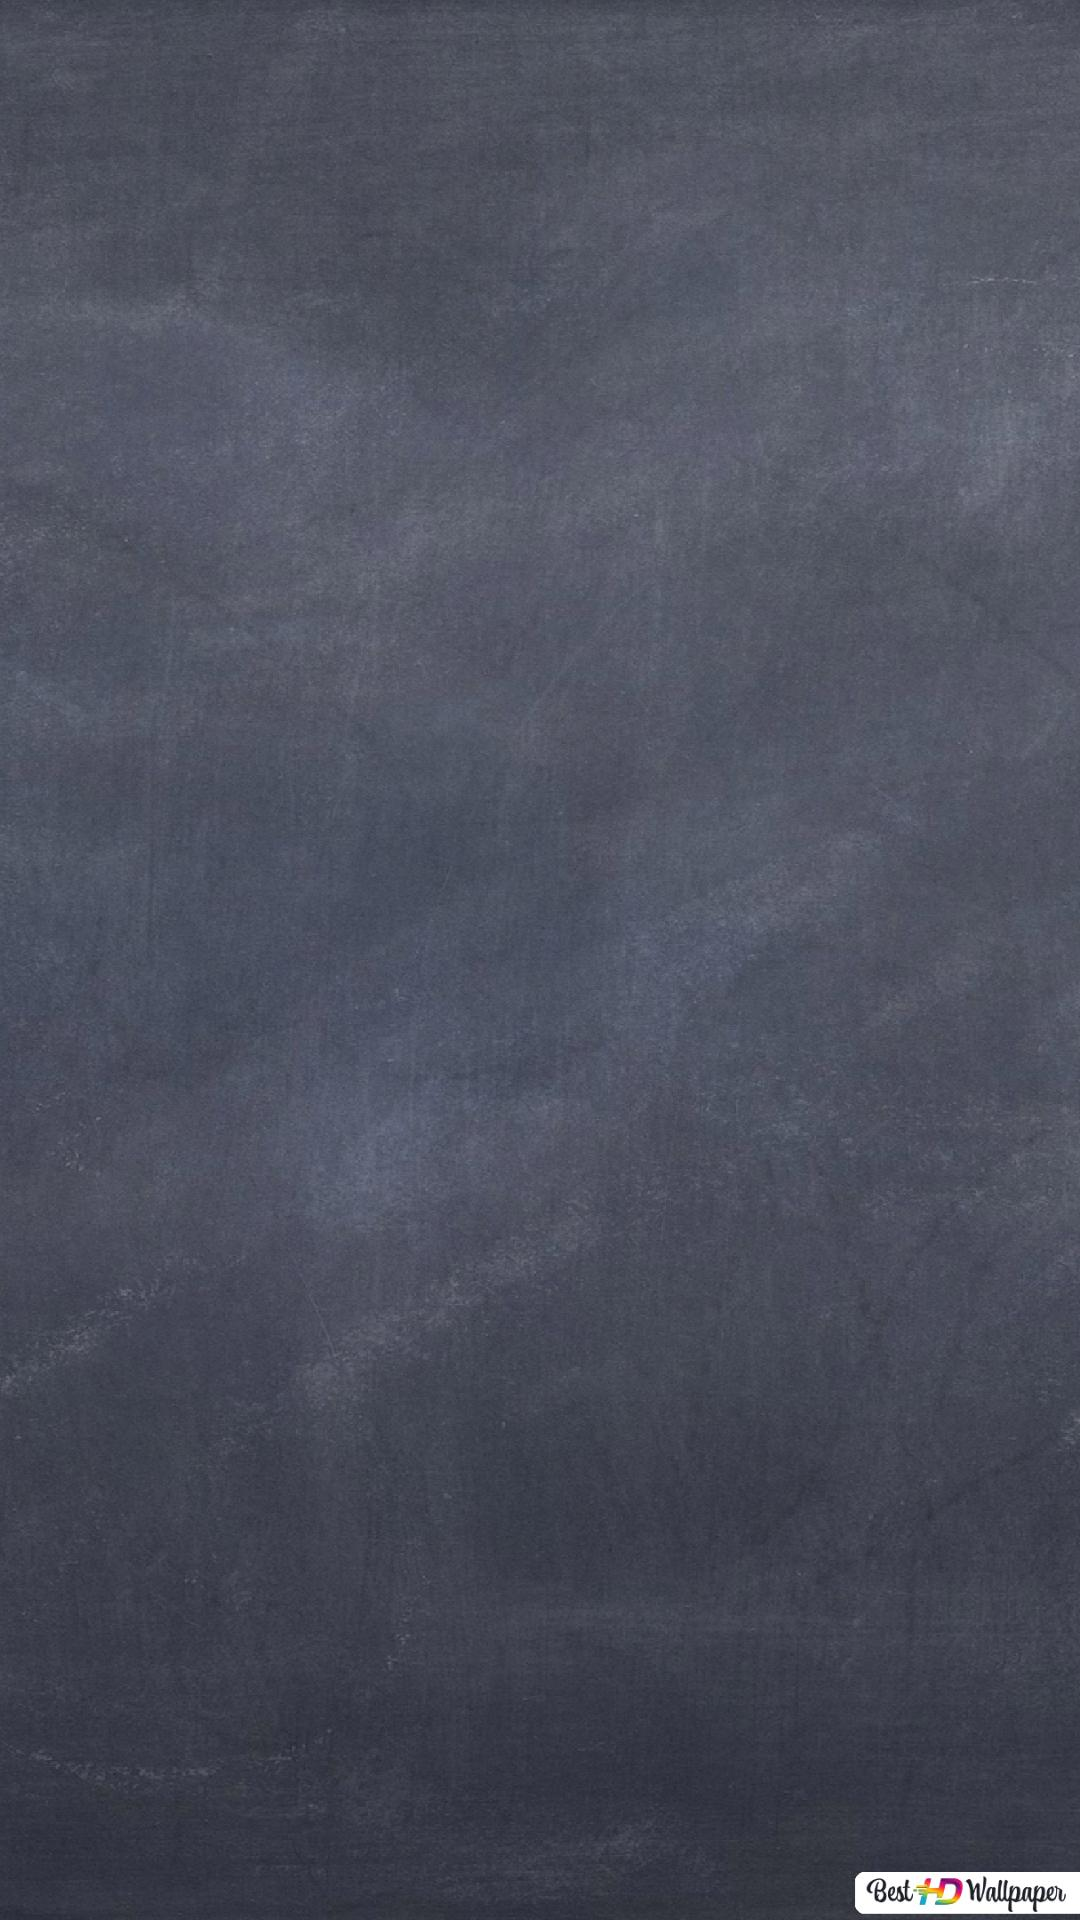 clean blackboard hd wallpaper download